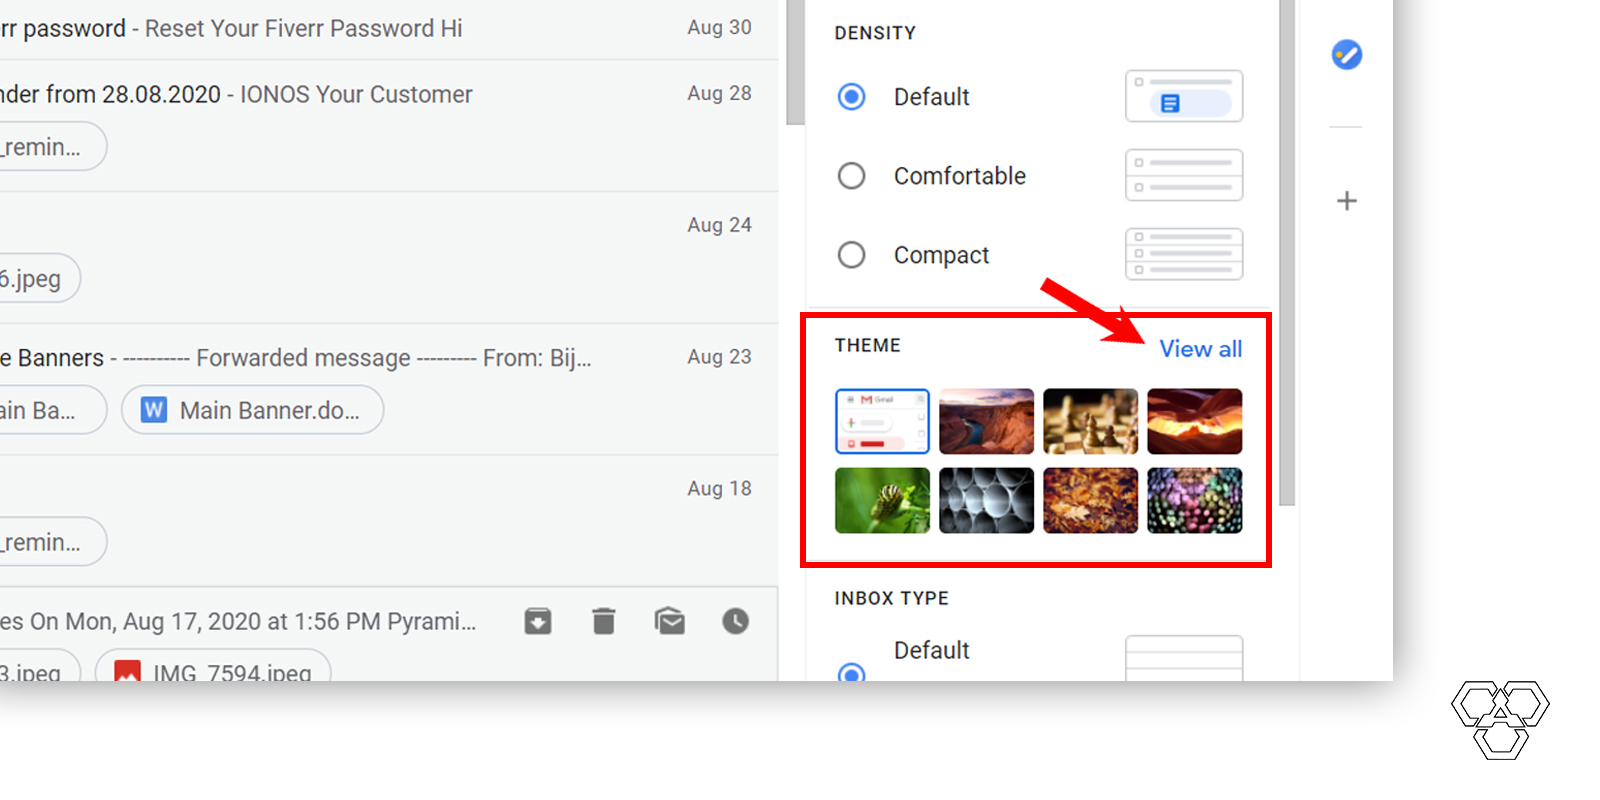 View all themes option in gmail